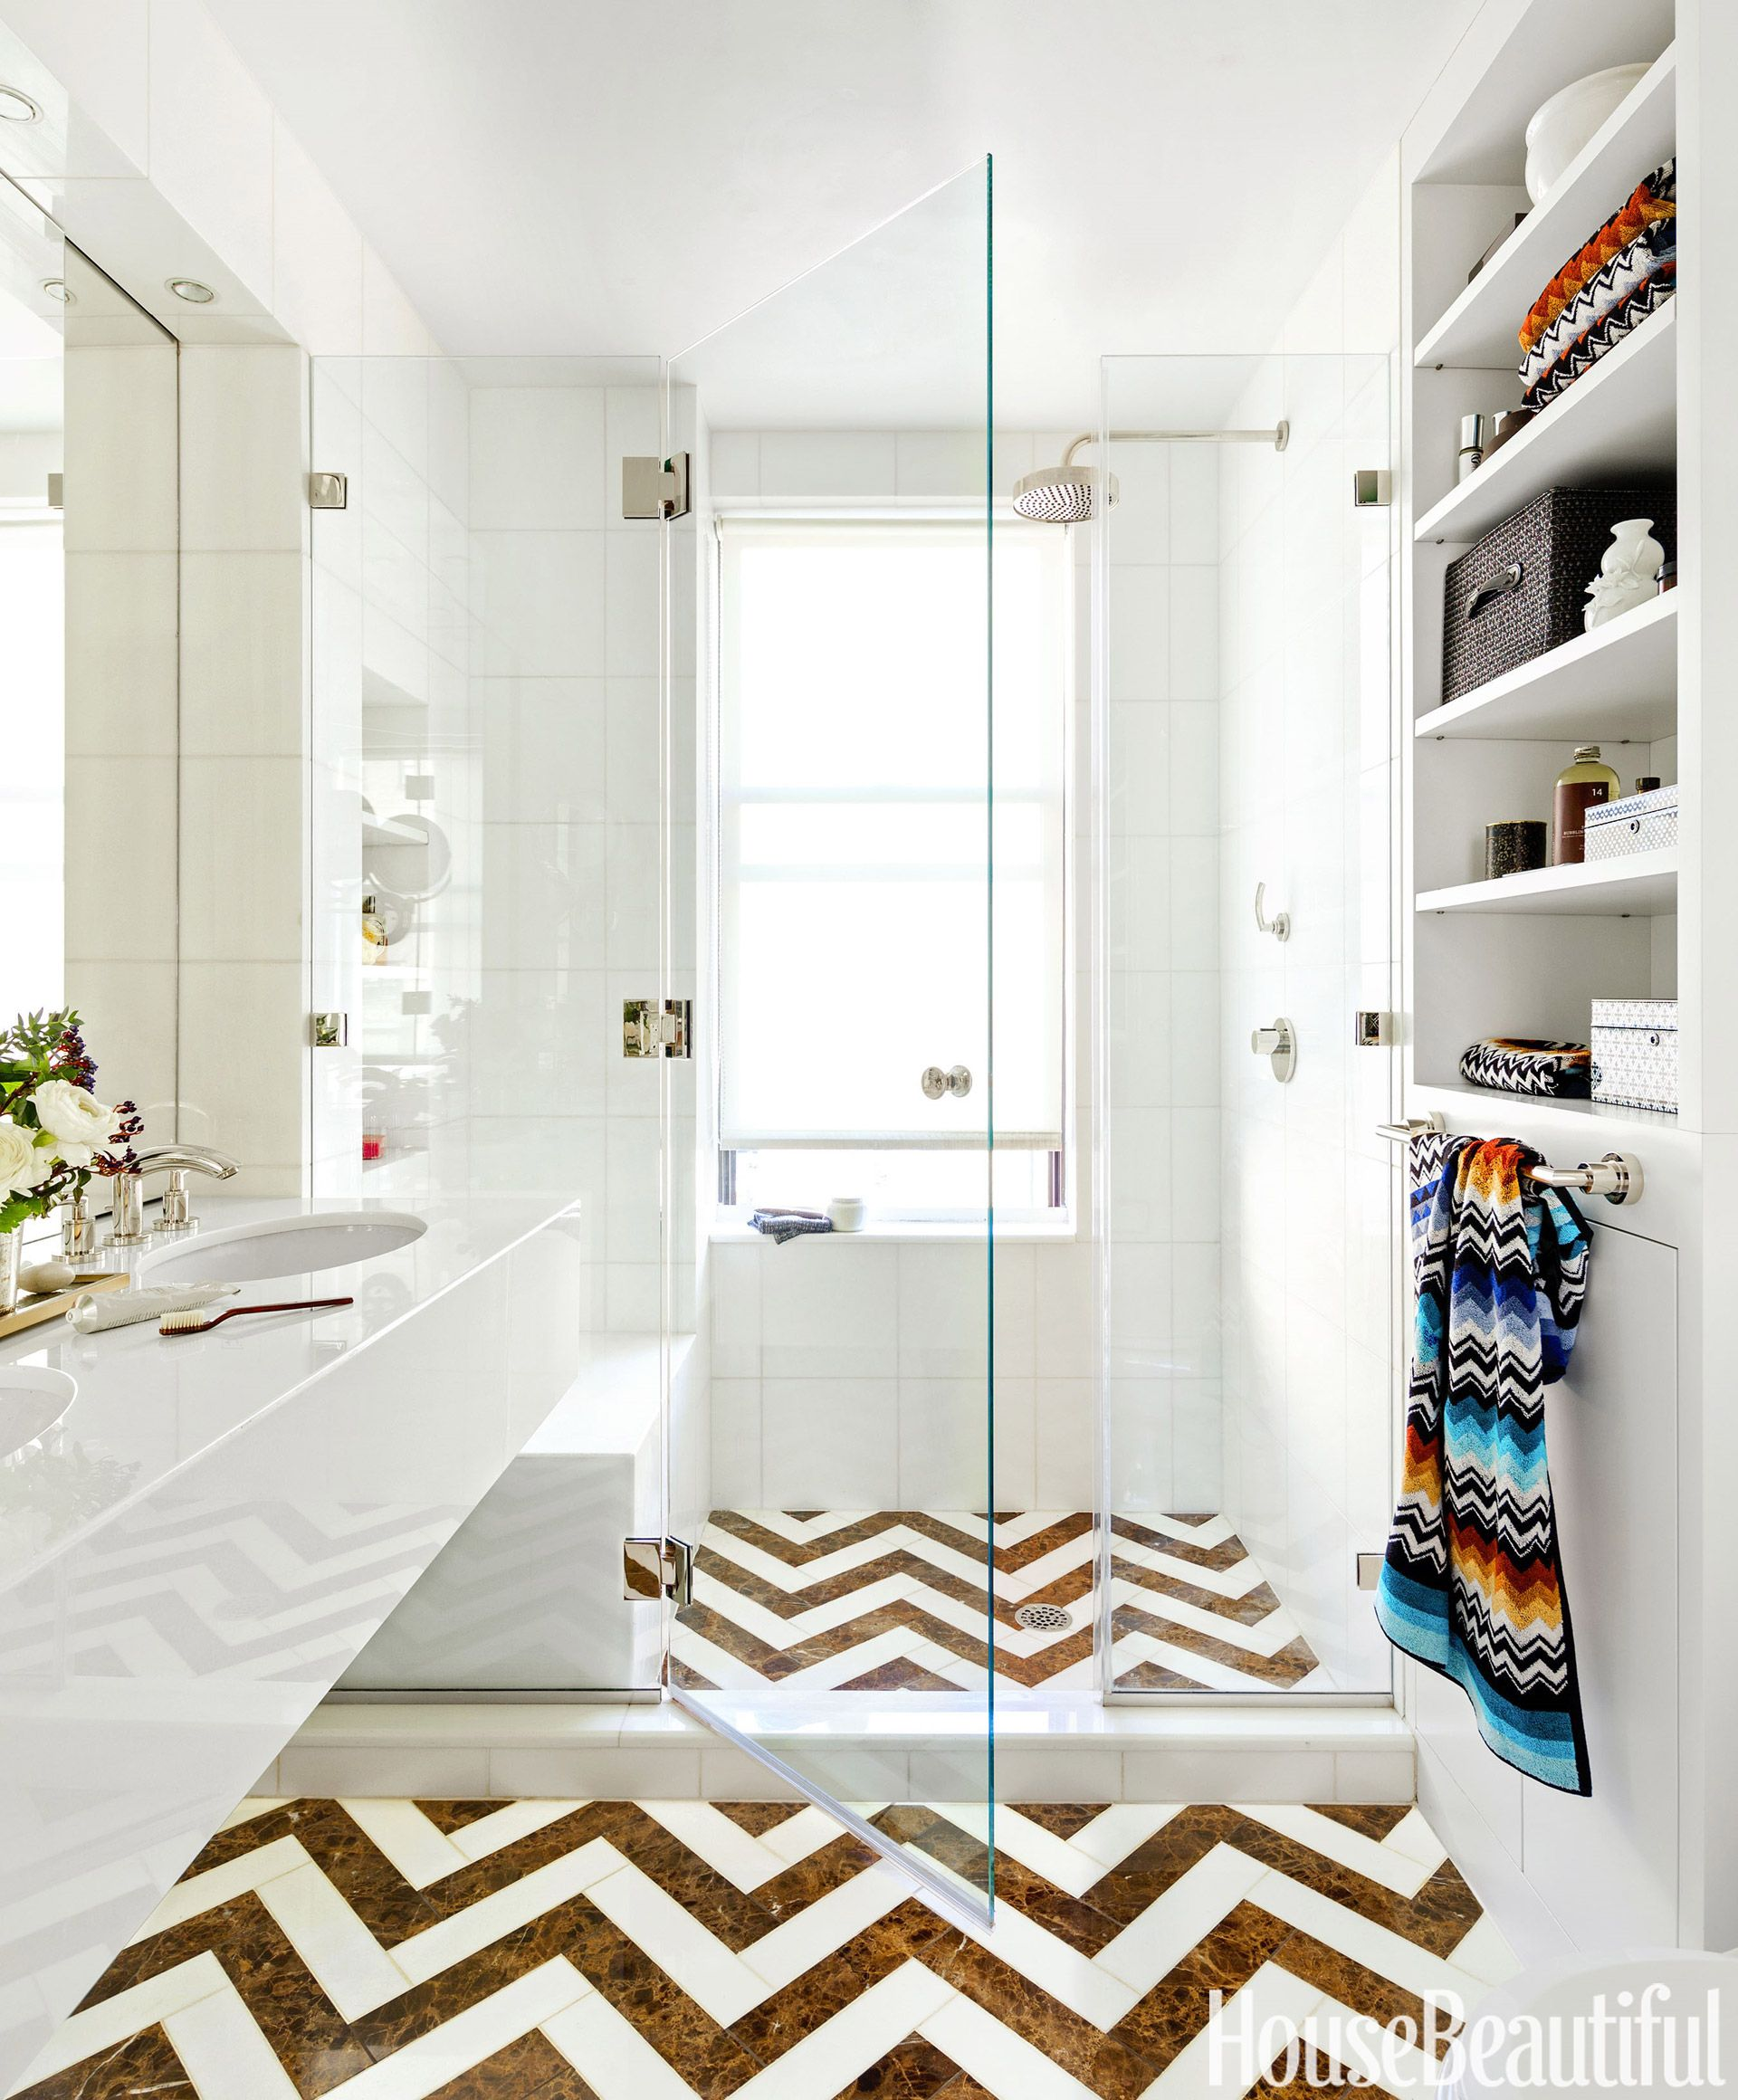 The Best Tile Ideas For Small Bathrooms - Tiling Ideas For A Small ...